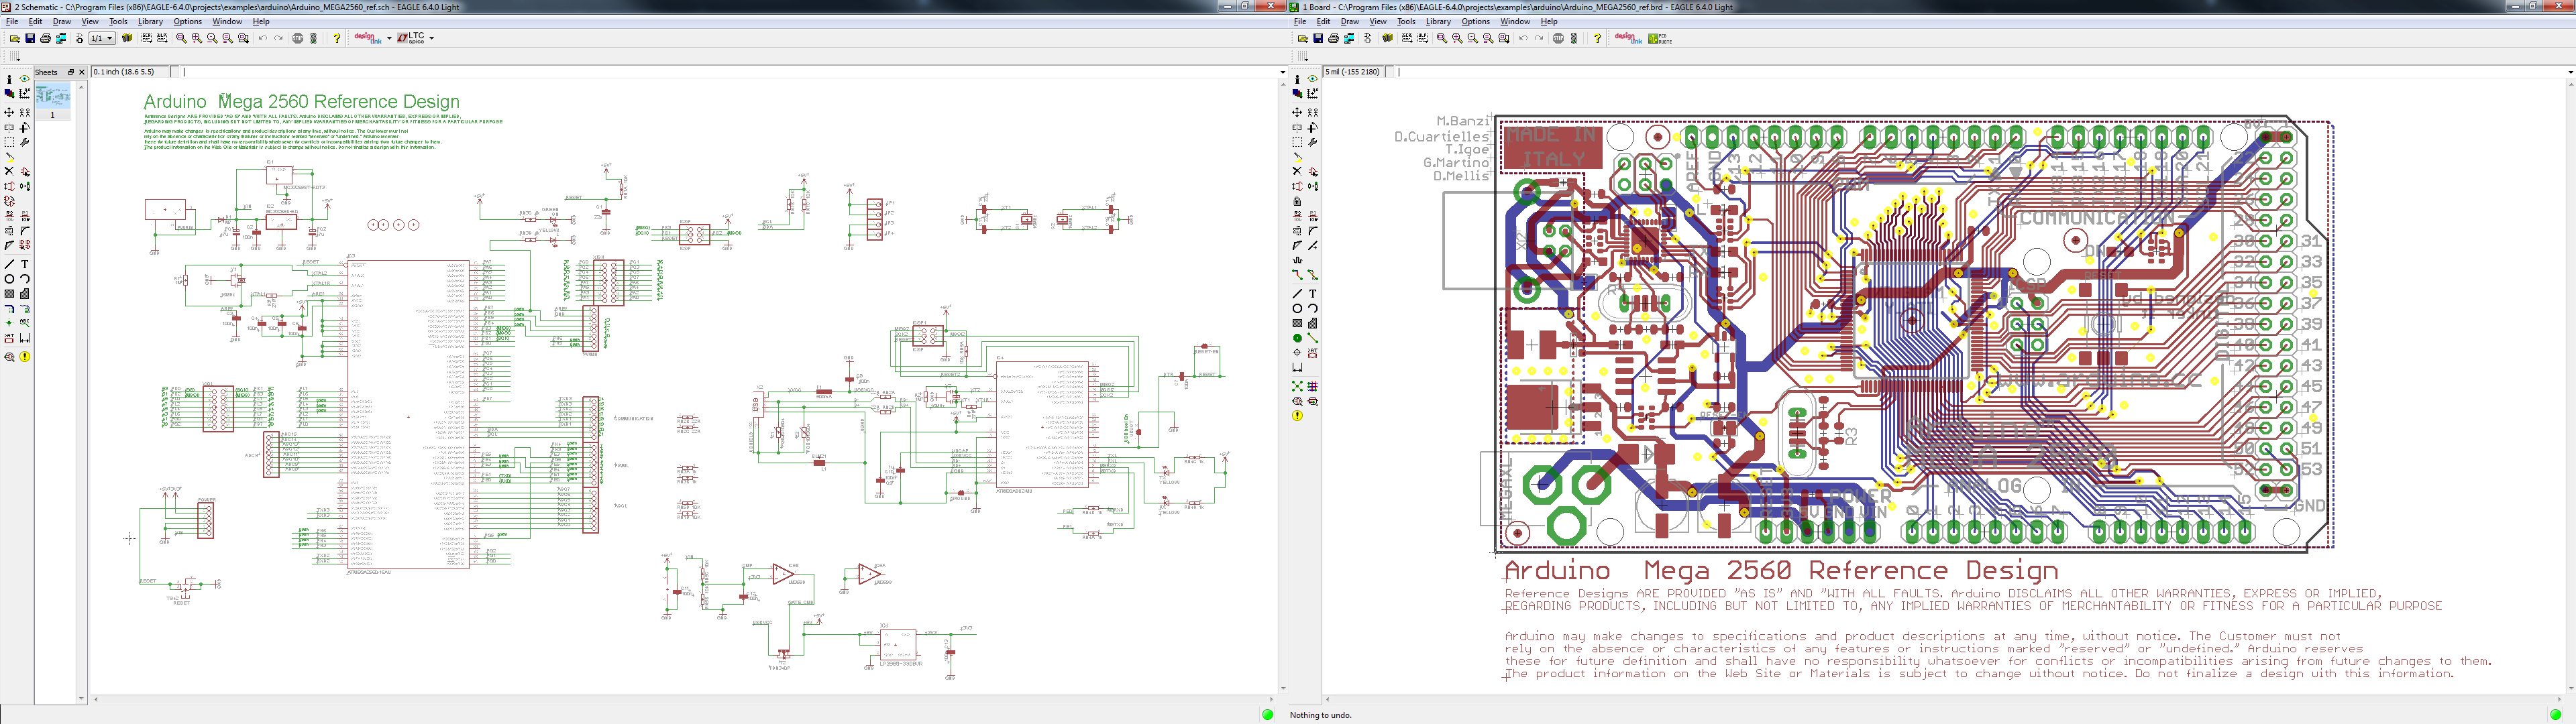 Sub Wiring Software D - Enthusiast Wiring Diagrams •